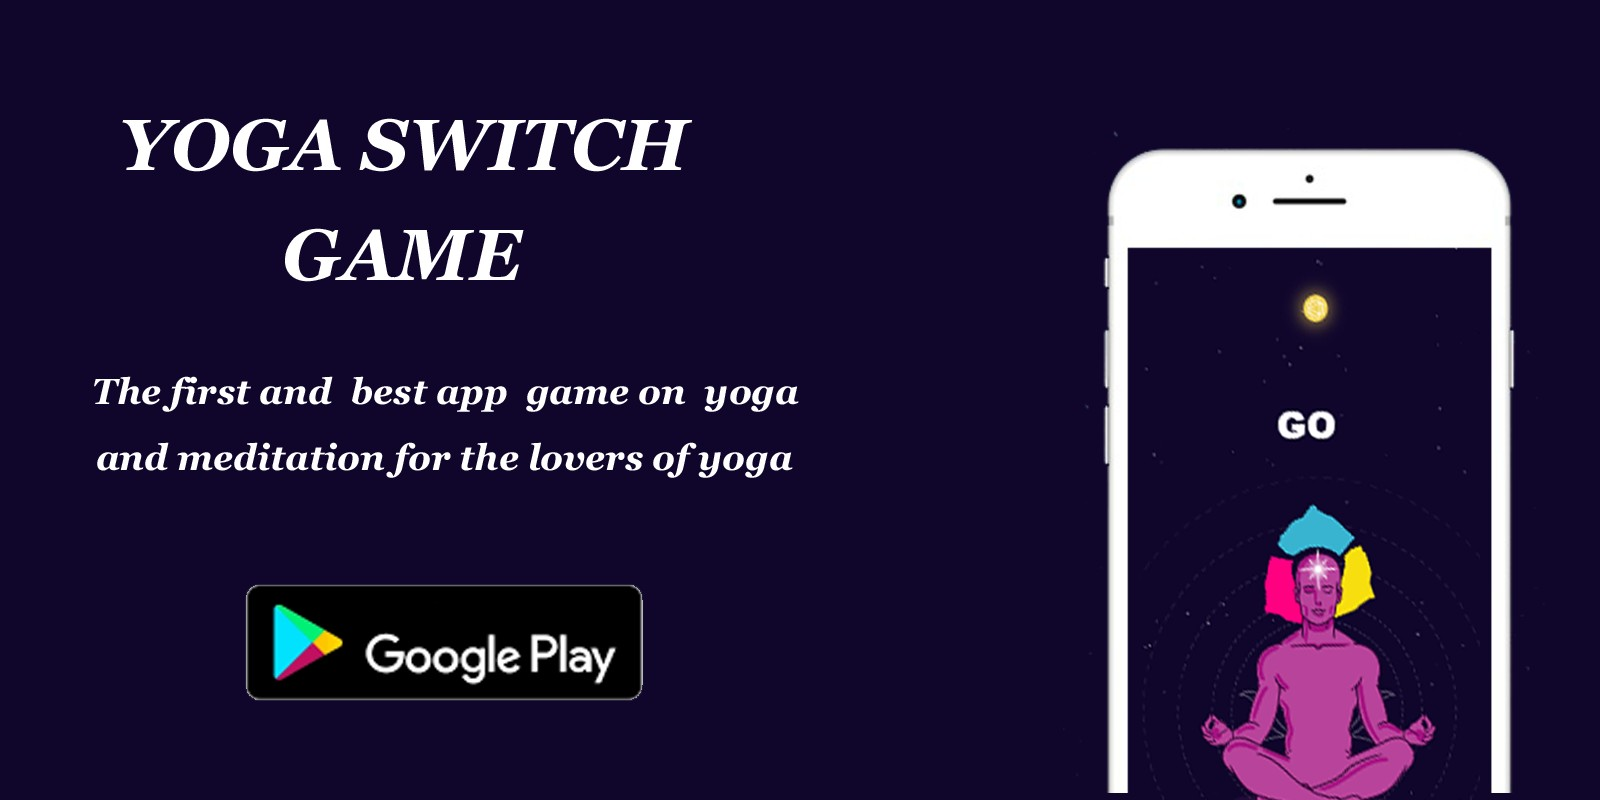 Yoga Switch Game - Constuct 2 Template